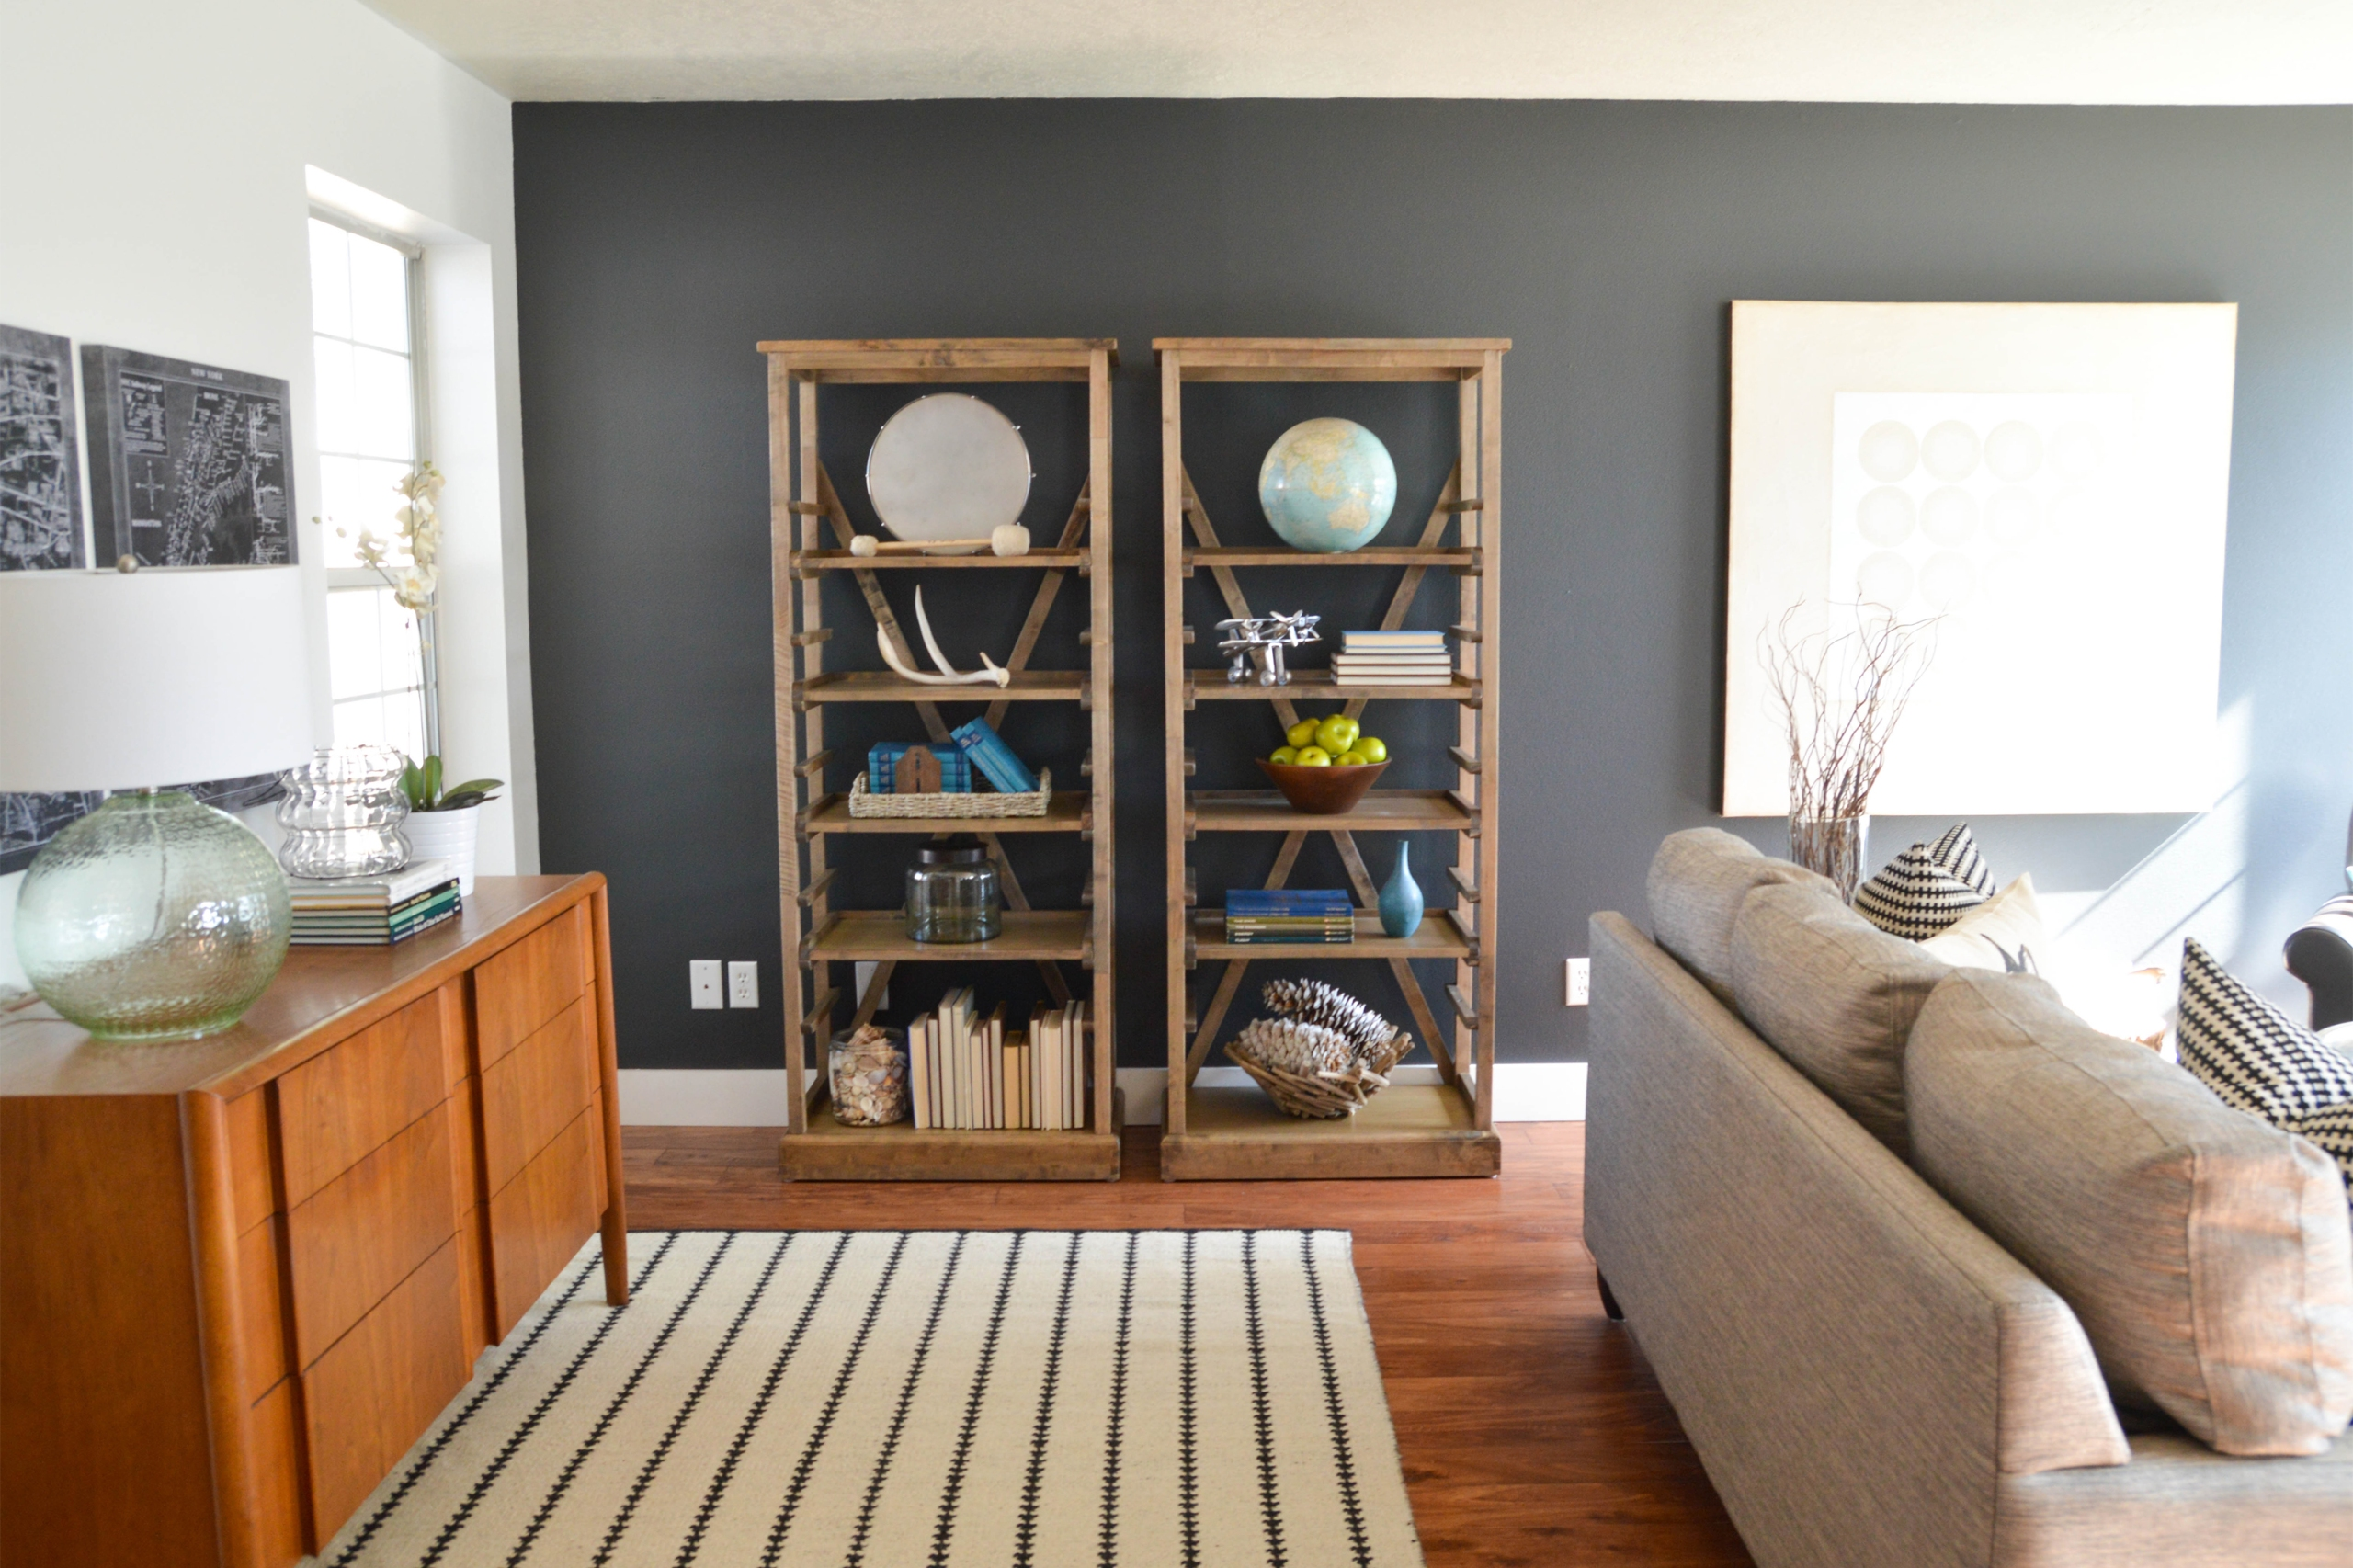 Charcoal paint on an accent wall in a home living room